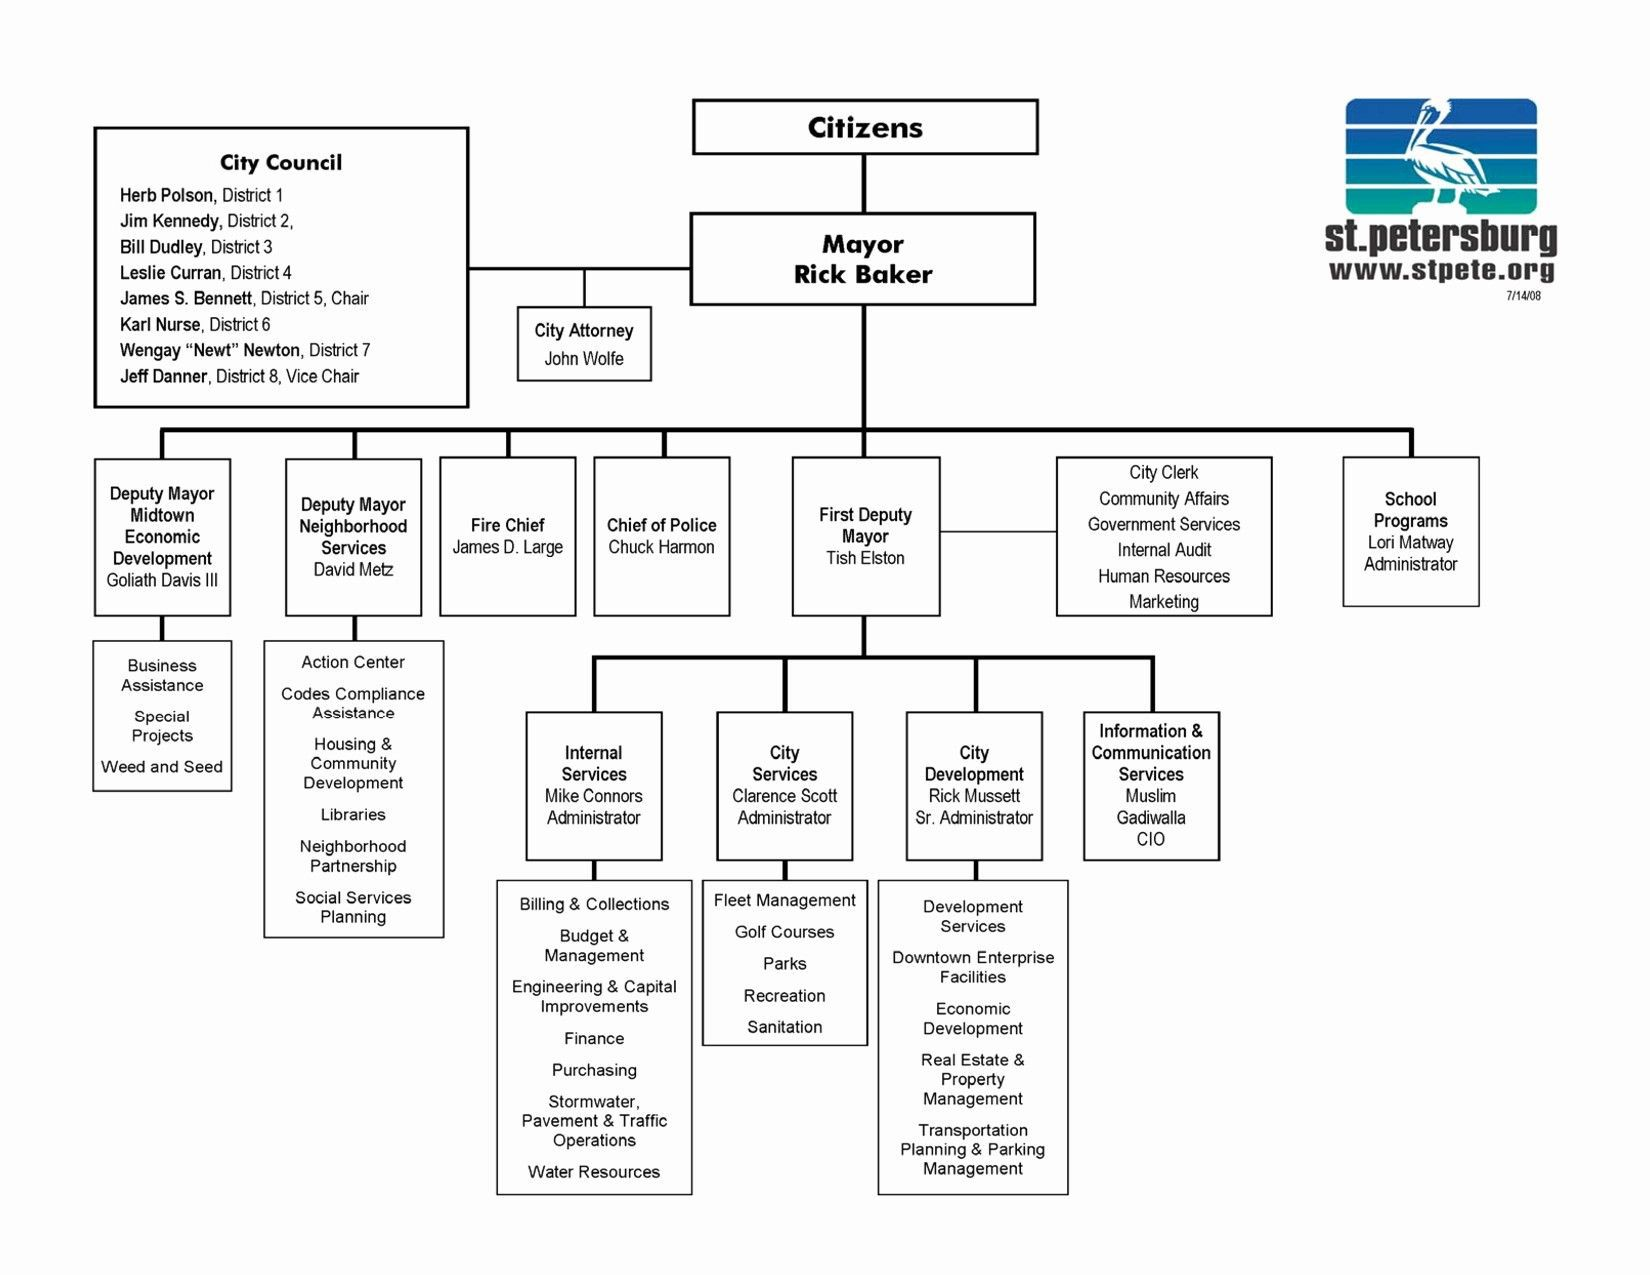 002 Shocking Microsoft Office Org Chart Template Sample  Templates M Organization OrganizationalFull